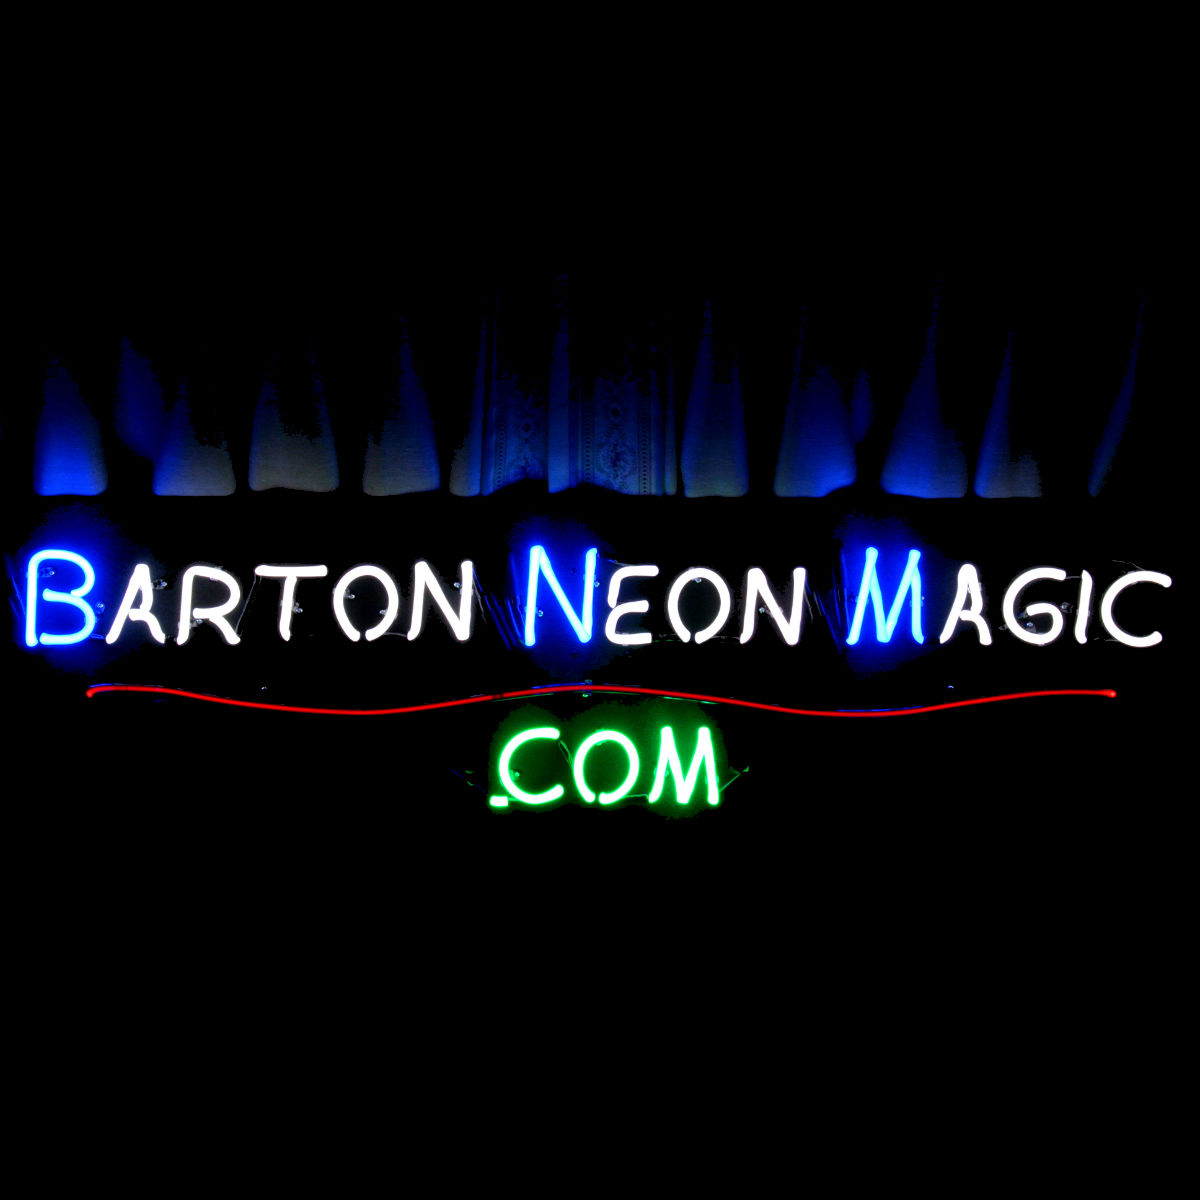 MODERN DESIGNER ACCENT LIGHTING IN BRILLIANT NEON by John Barton - BartonNeonMagic.com